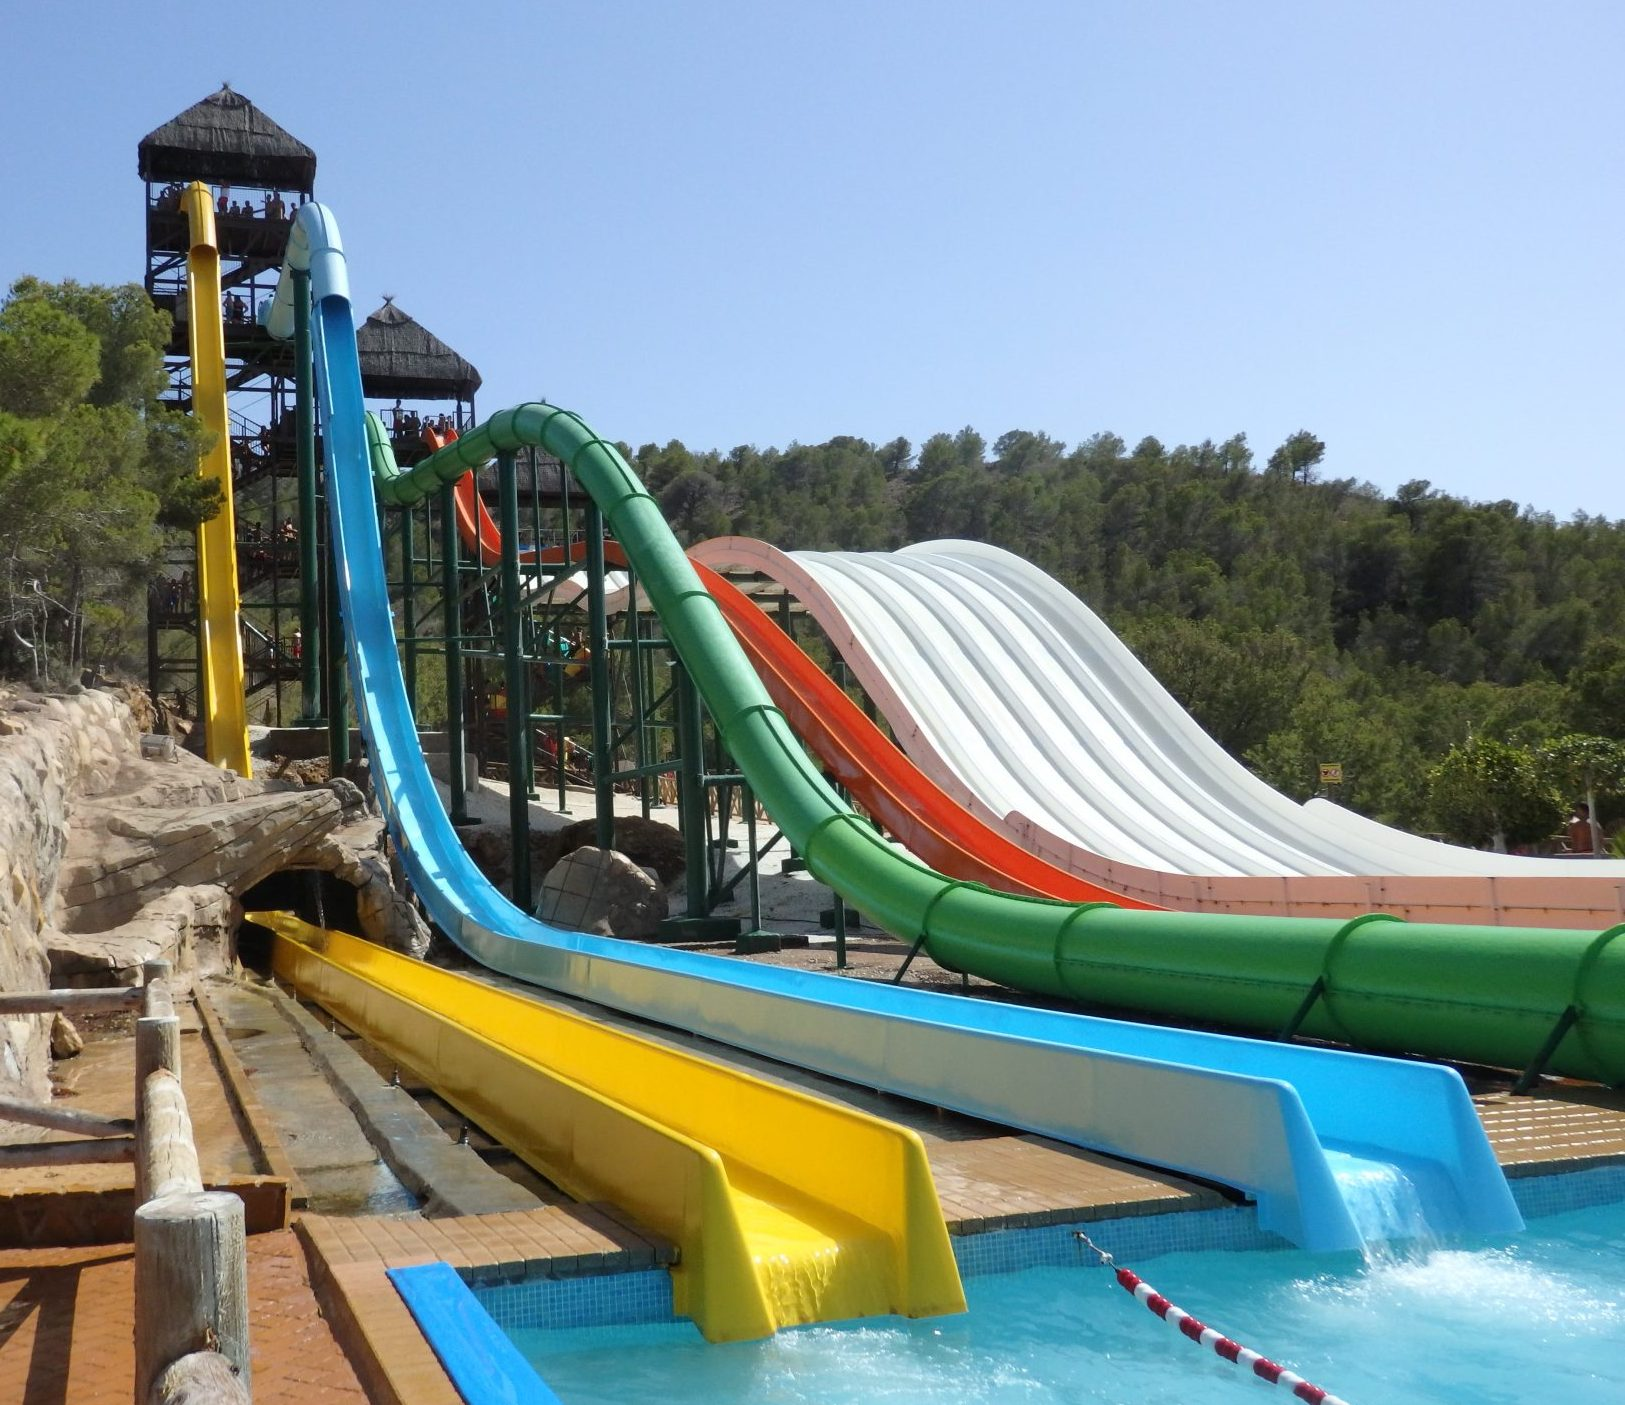 water slides at Aqualandia in Benidorm